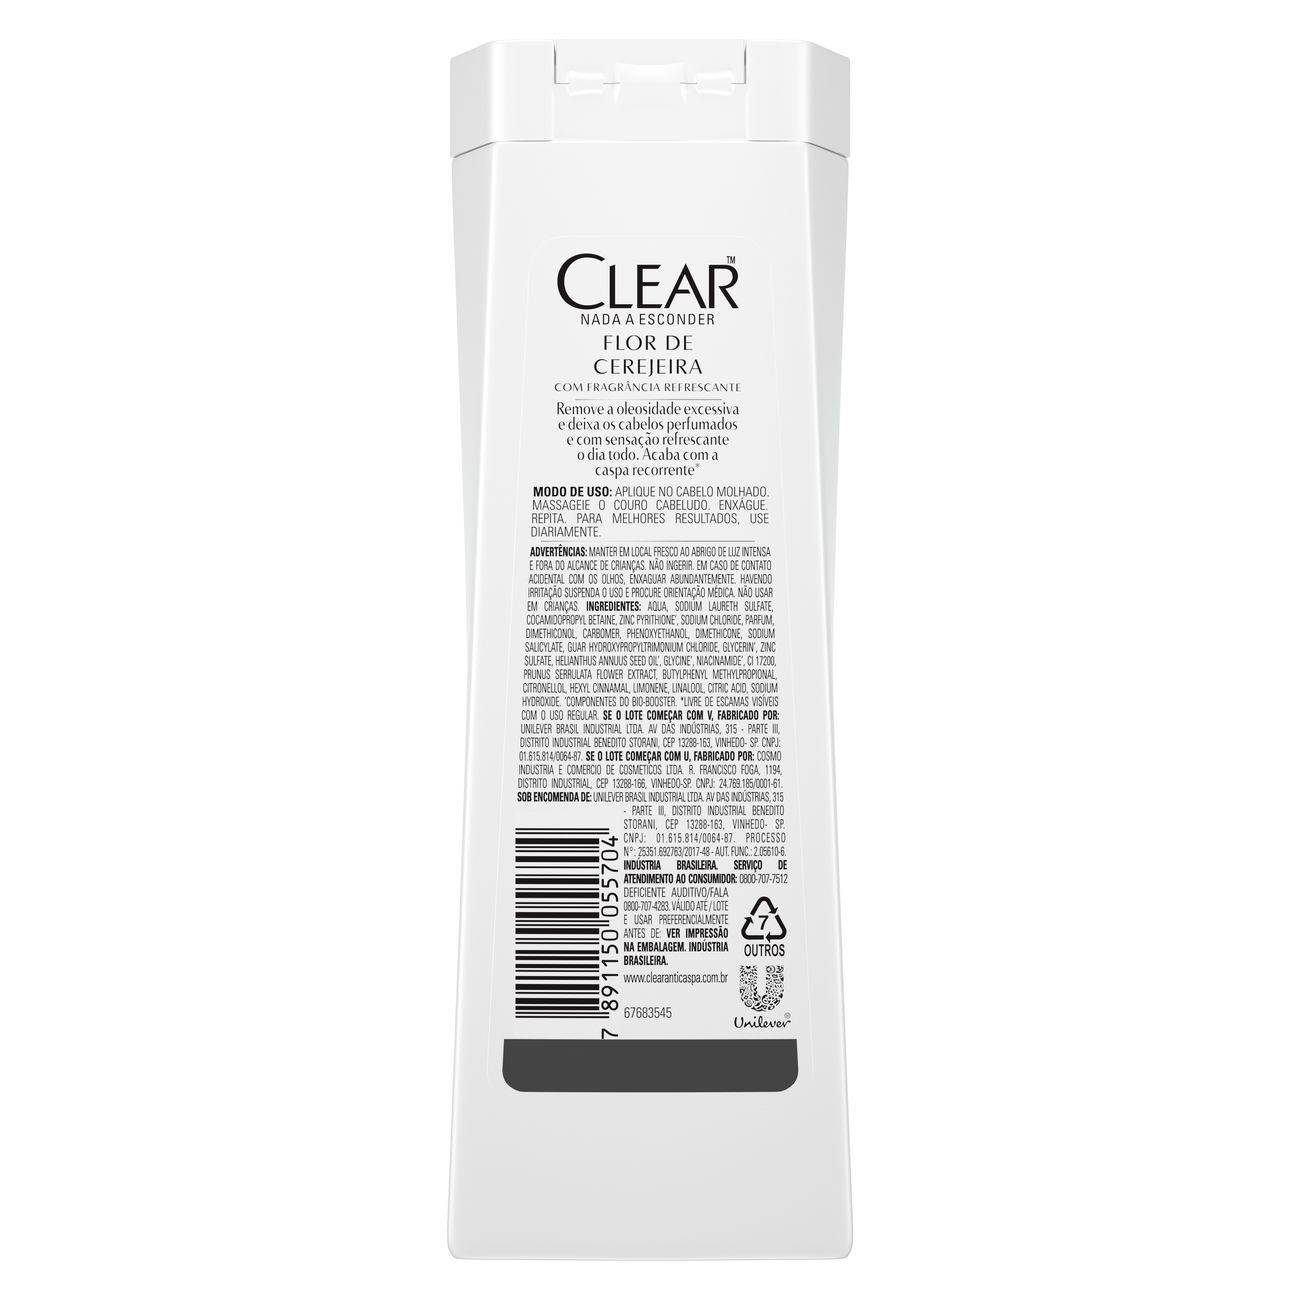 Shampoo Anticaspa Clear Flor de Cerejeira 200ml